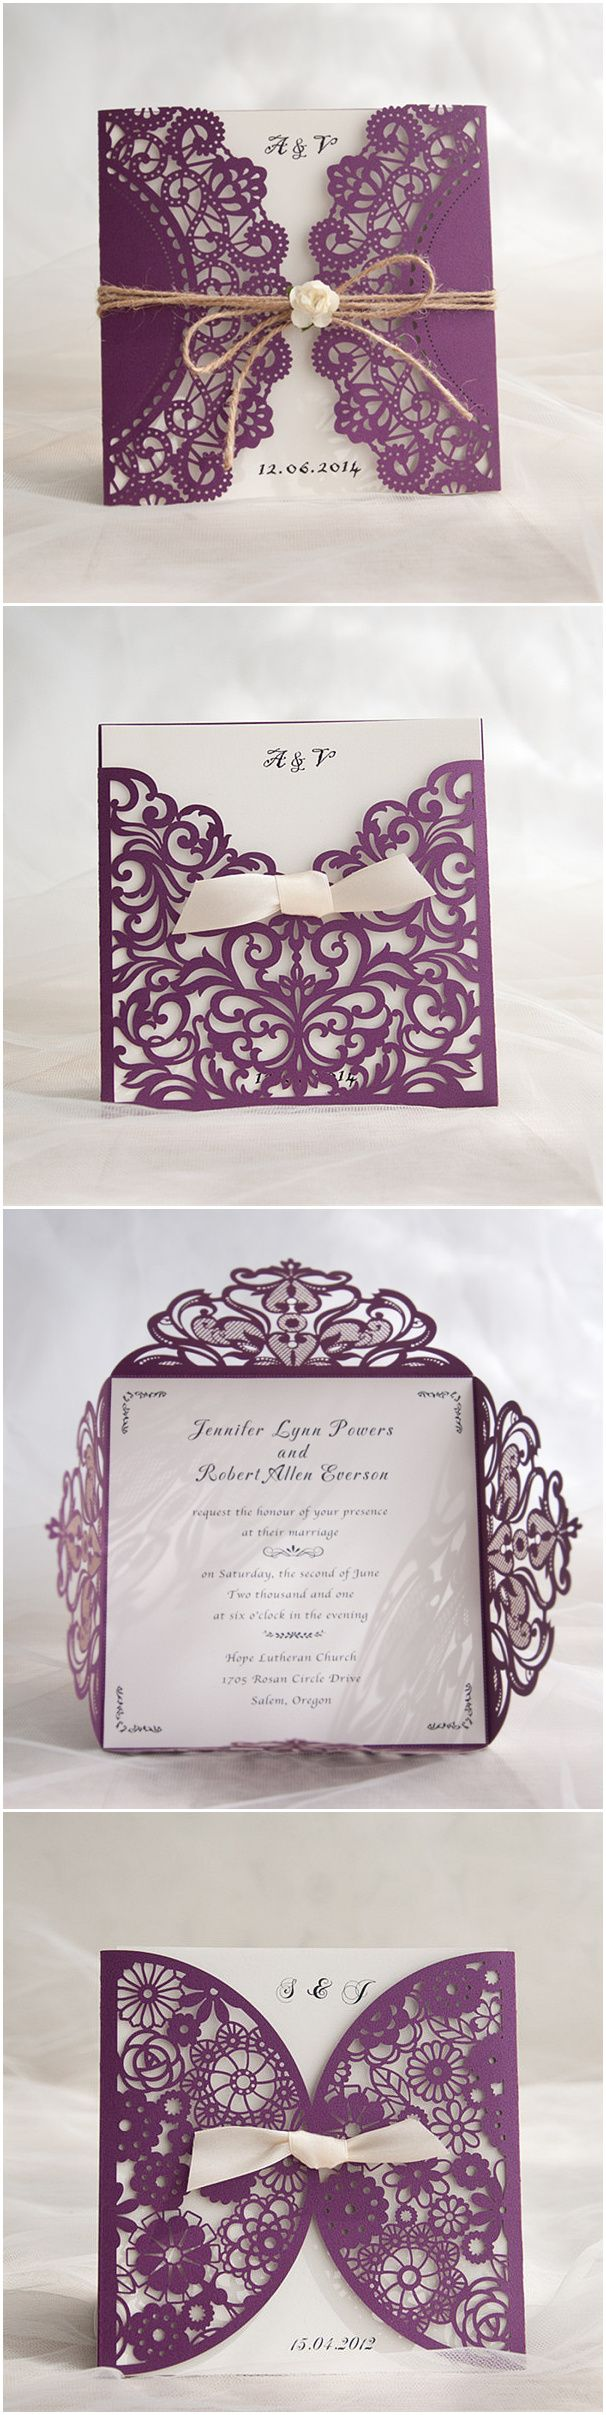 Best 15 Wedding Invitations Ideas On Pinterest Weddings